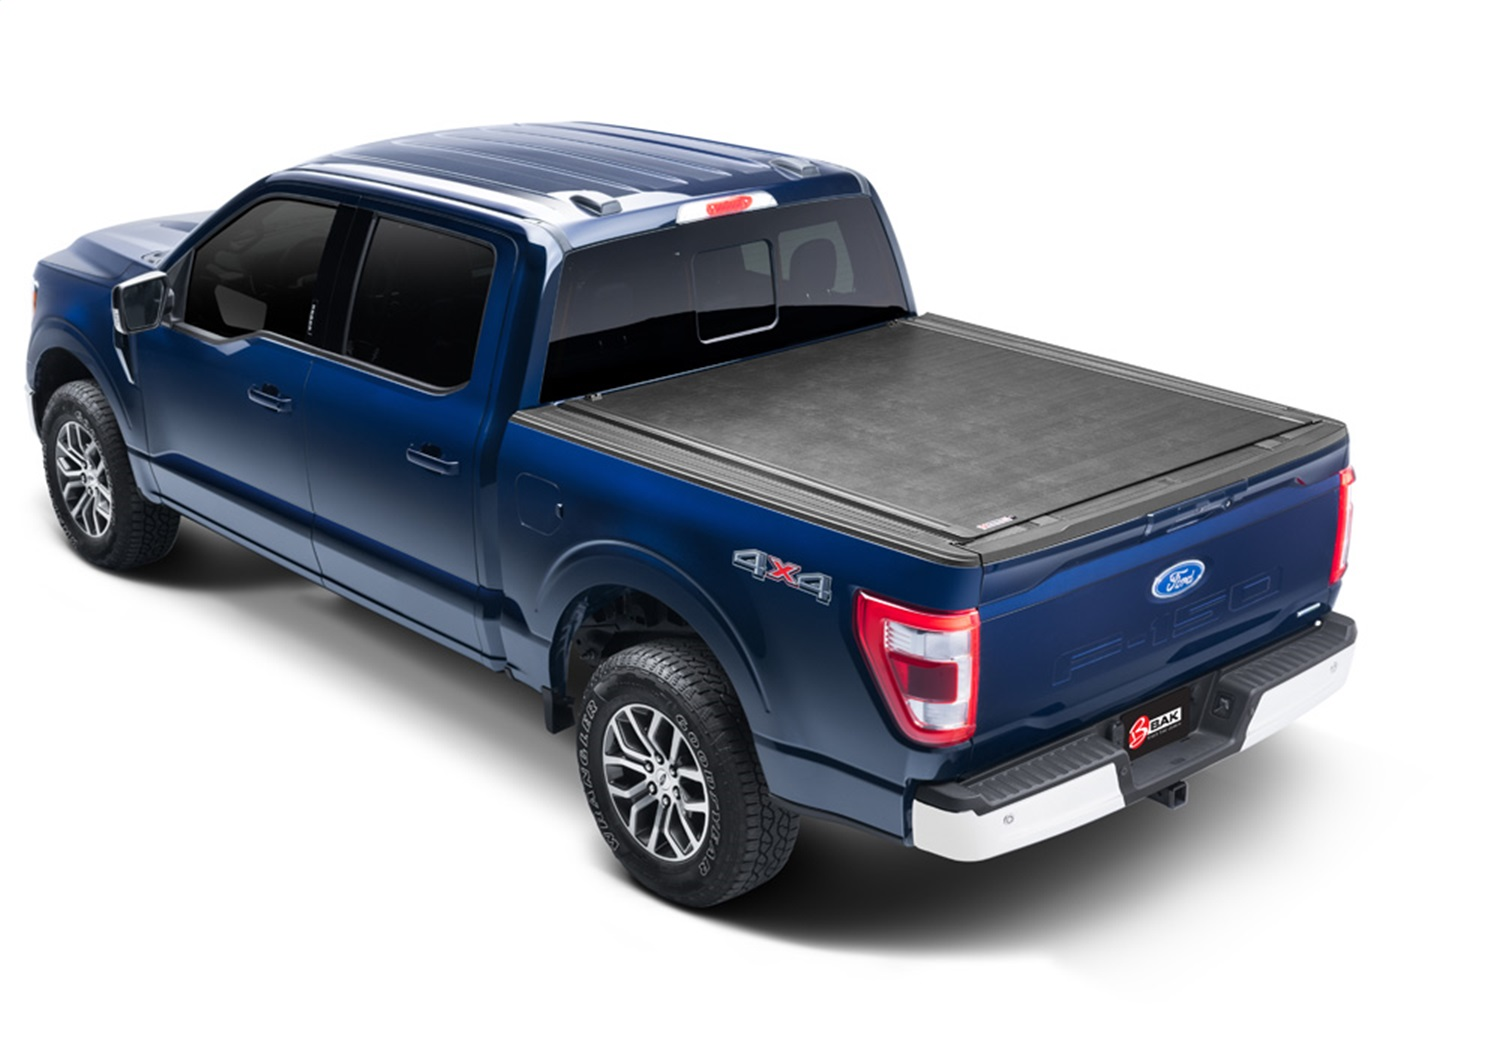 BAK Industries 39331 Revolver X2 Hard Rolling Truck Bed Cover